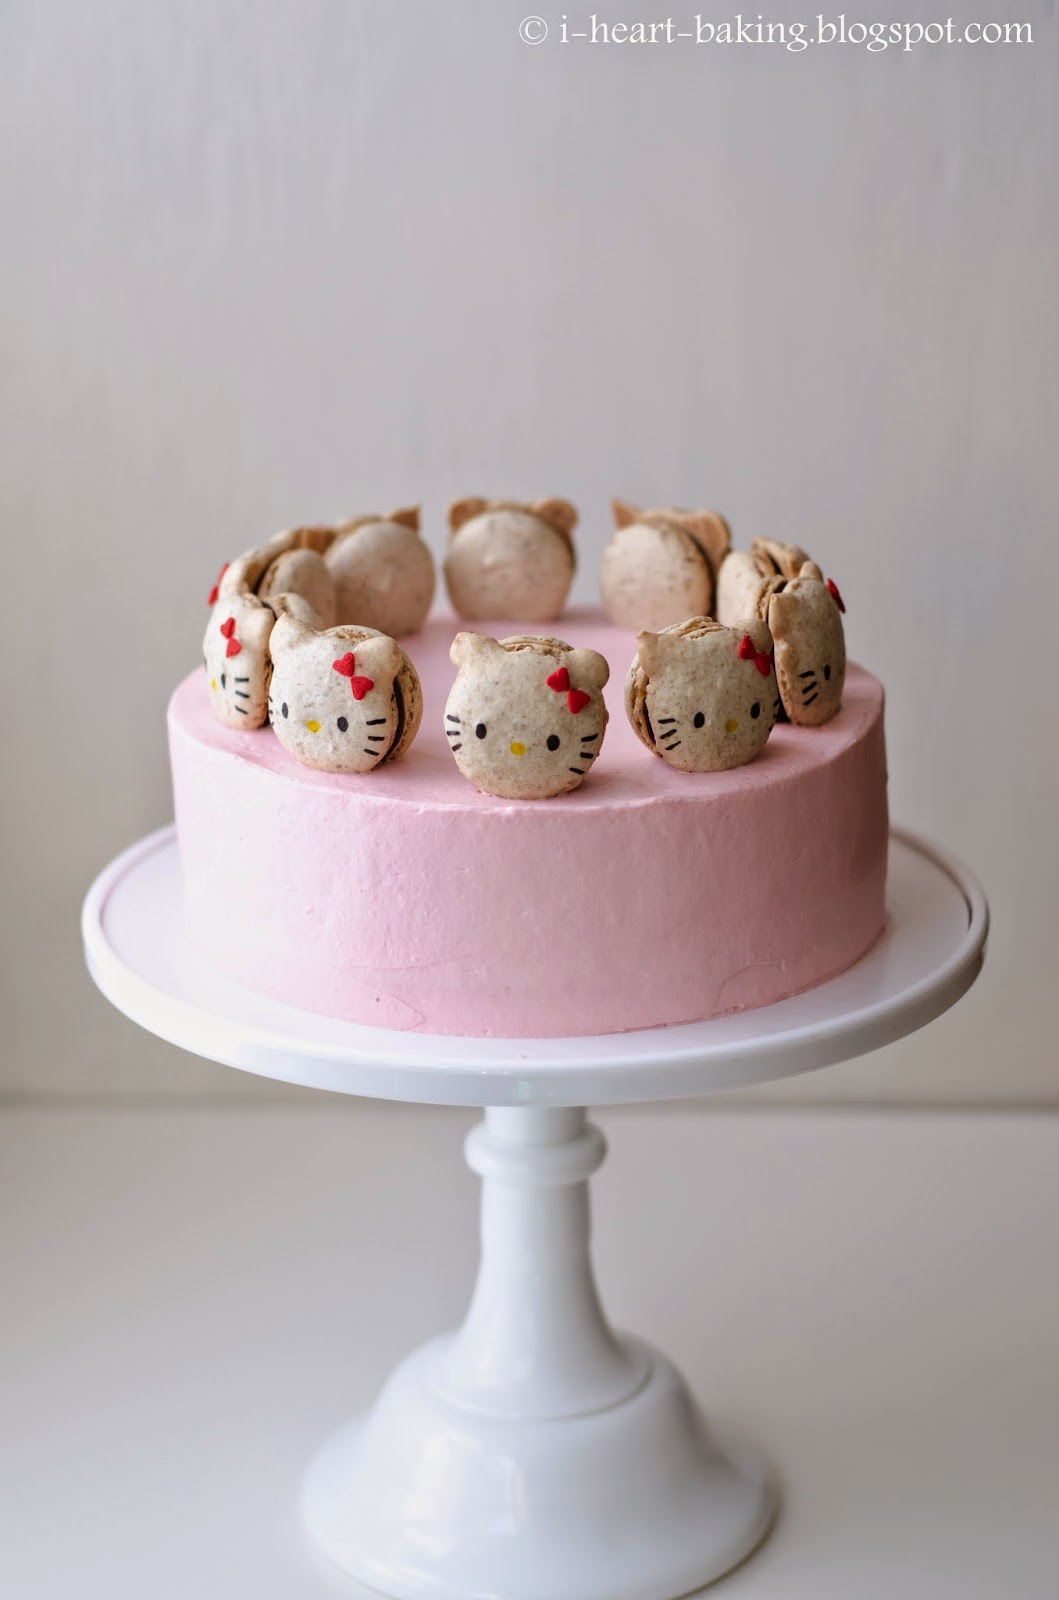 i heart baking!: hello kitty macaron cake with neapolitan ...